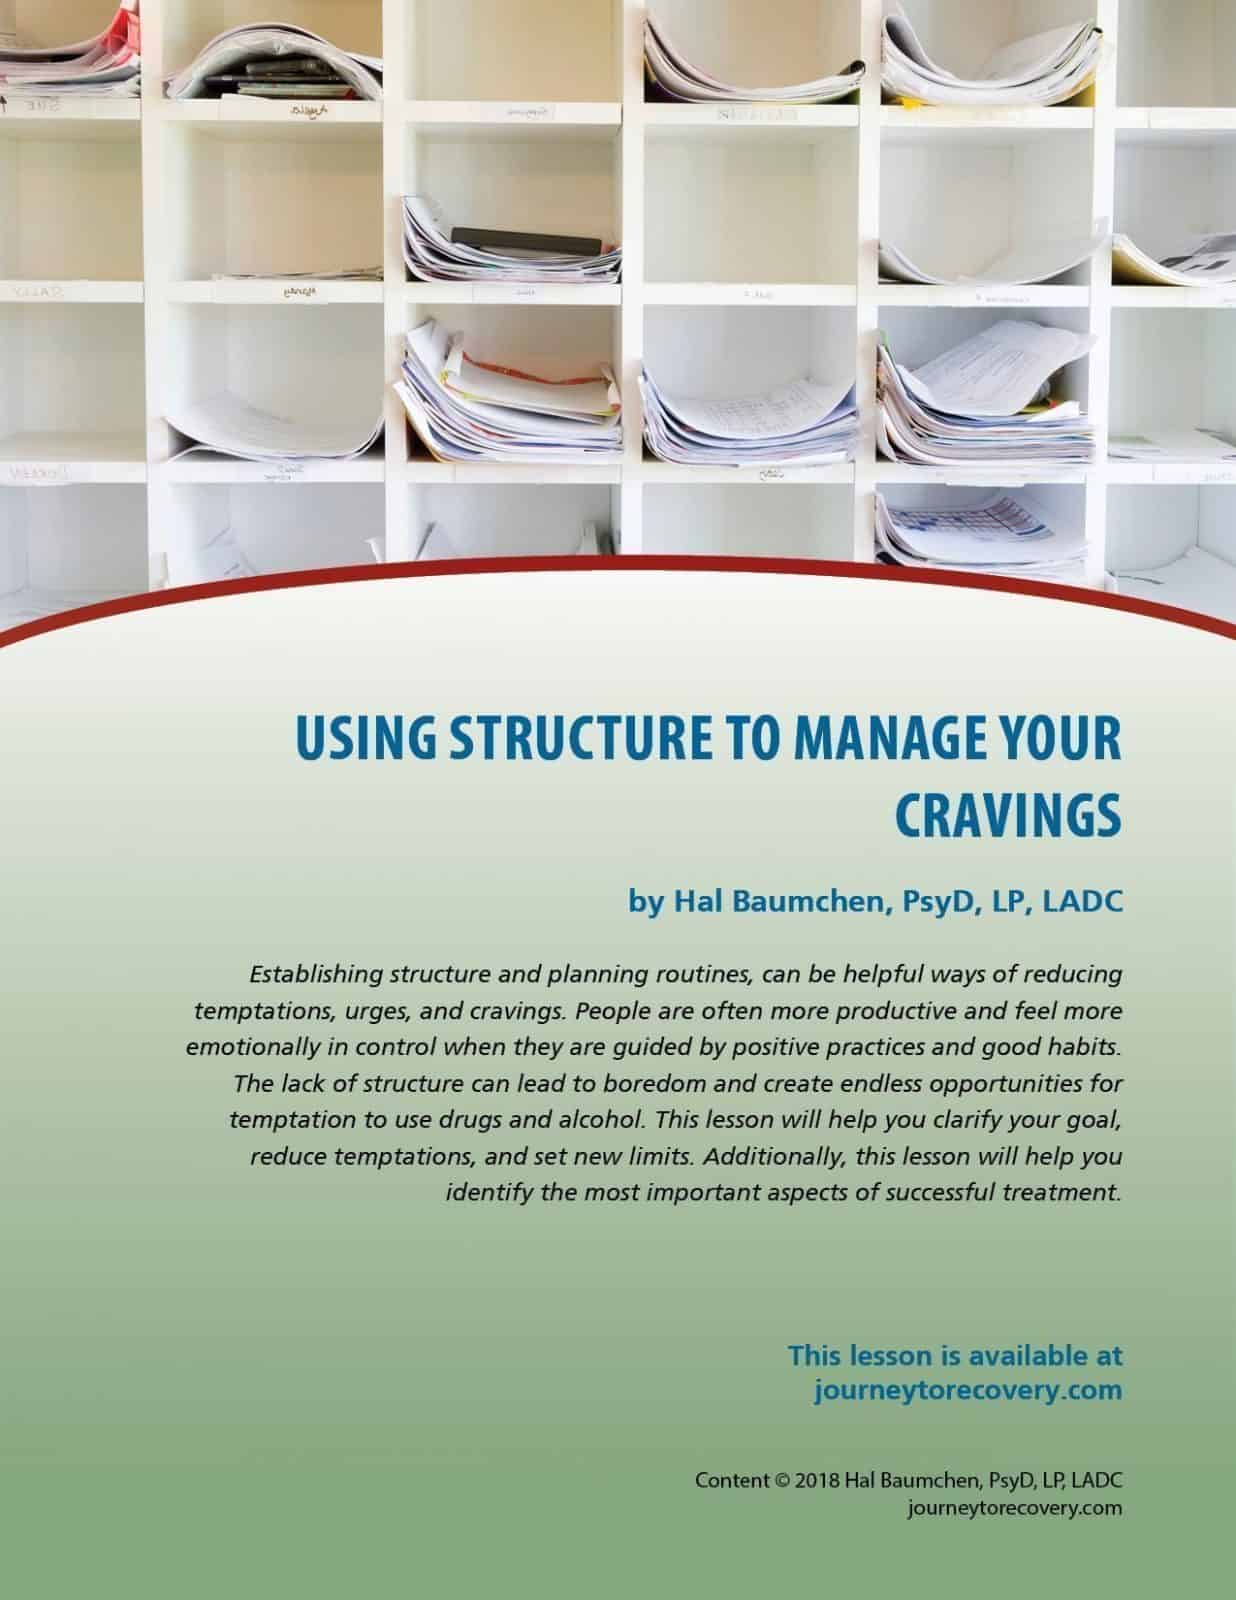 Using Structure To Manage Cravings Cod Lesson